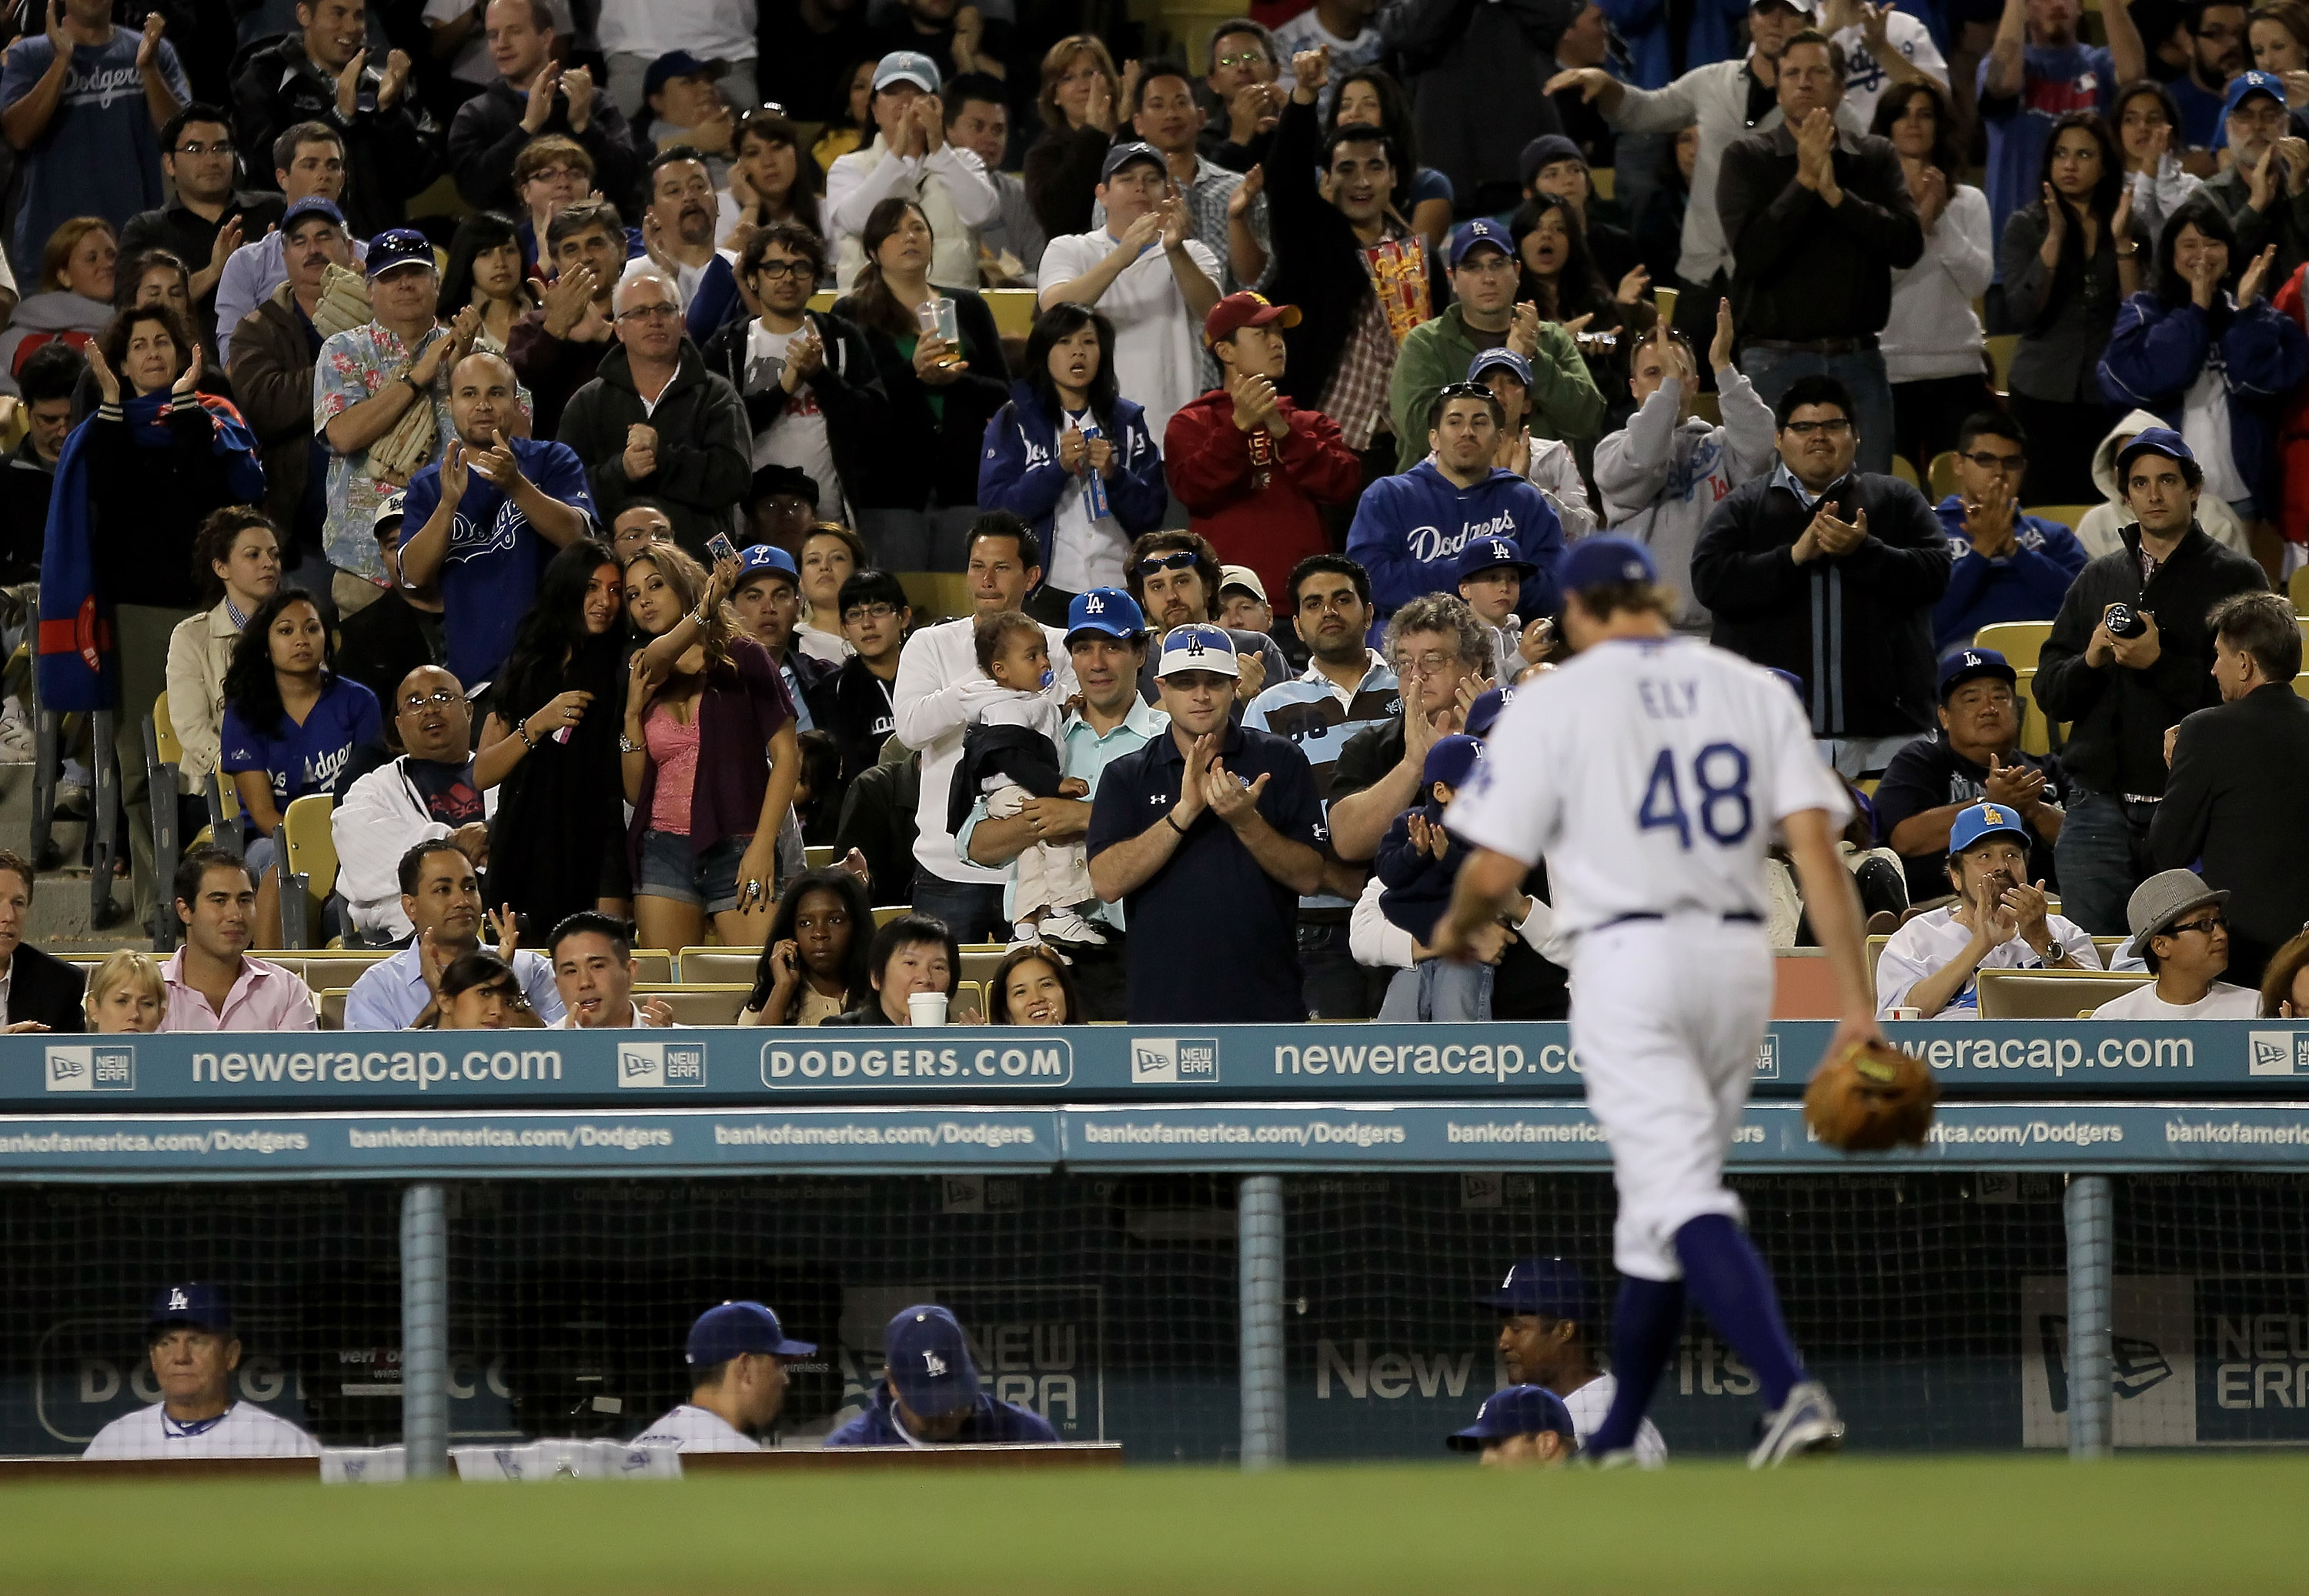 LOS ANGELES, CA - MAY 06:  Fans applaud starting pitcher John Ely #48 of the Los Angeles Dodgers as he comes out of the game in the seventh inning against the Milwaukee Brewers at Dodger Stadium on May 6, 2010 in Los Angeles, California.  (Photo by Jeff G